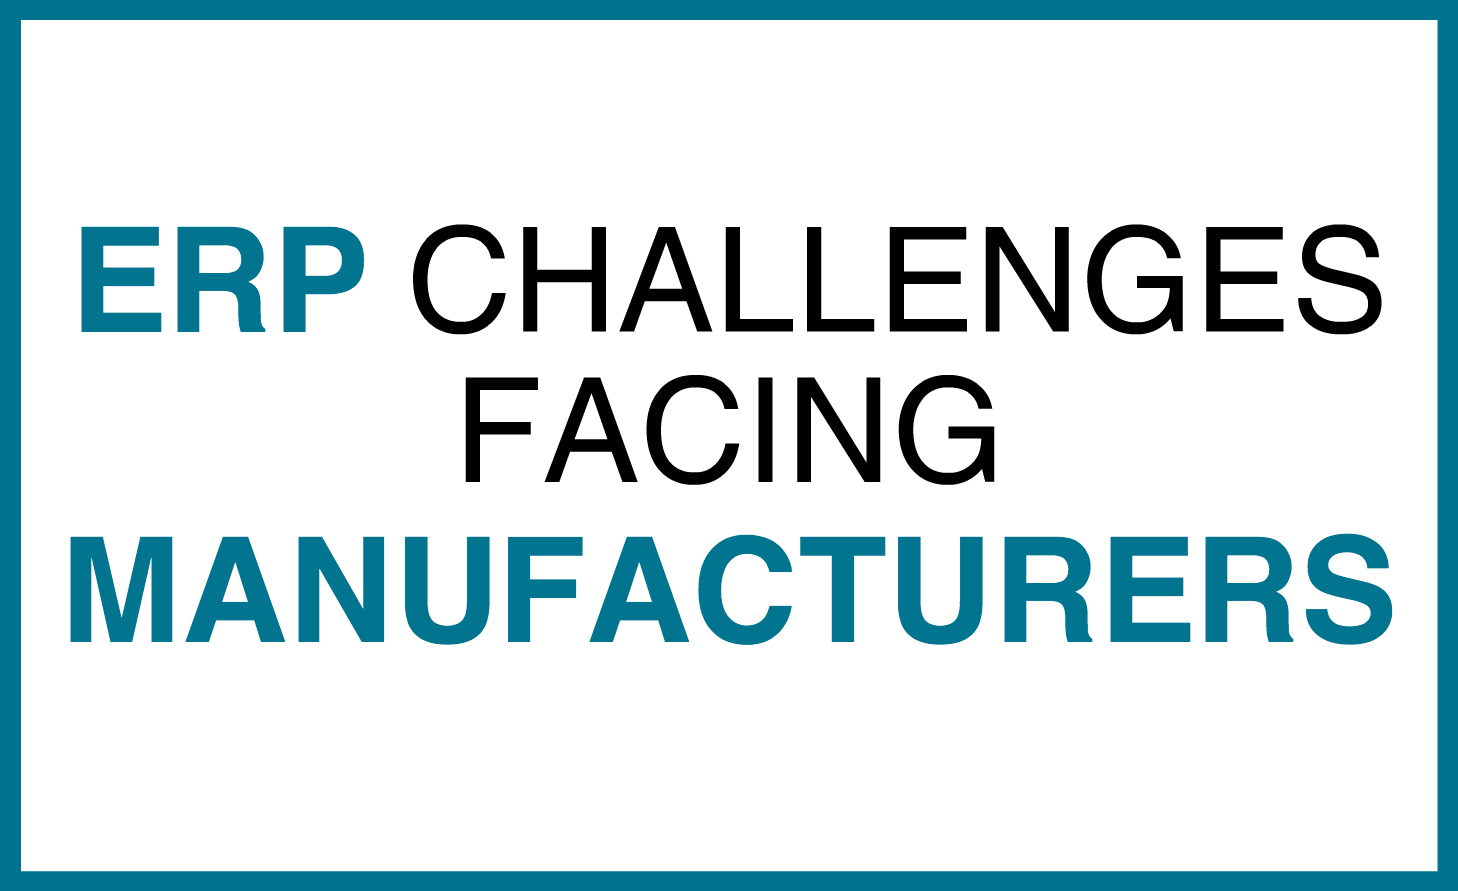 erp challenges manufacturers.png